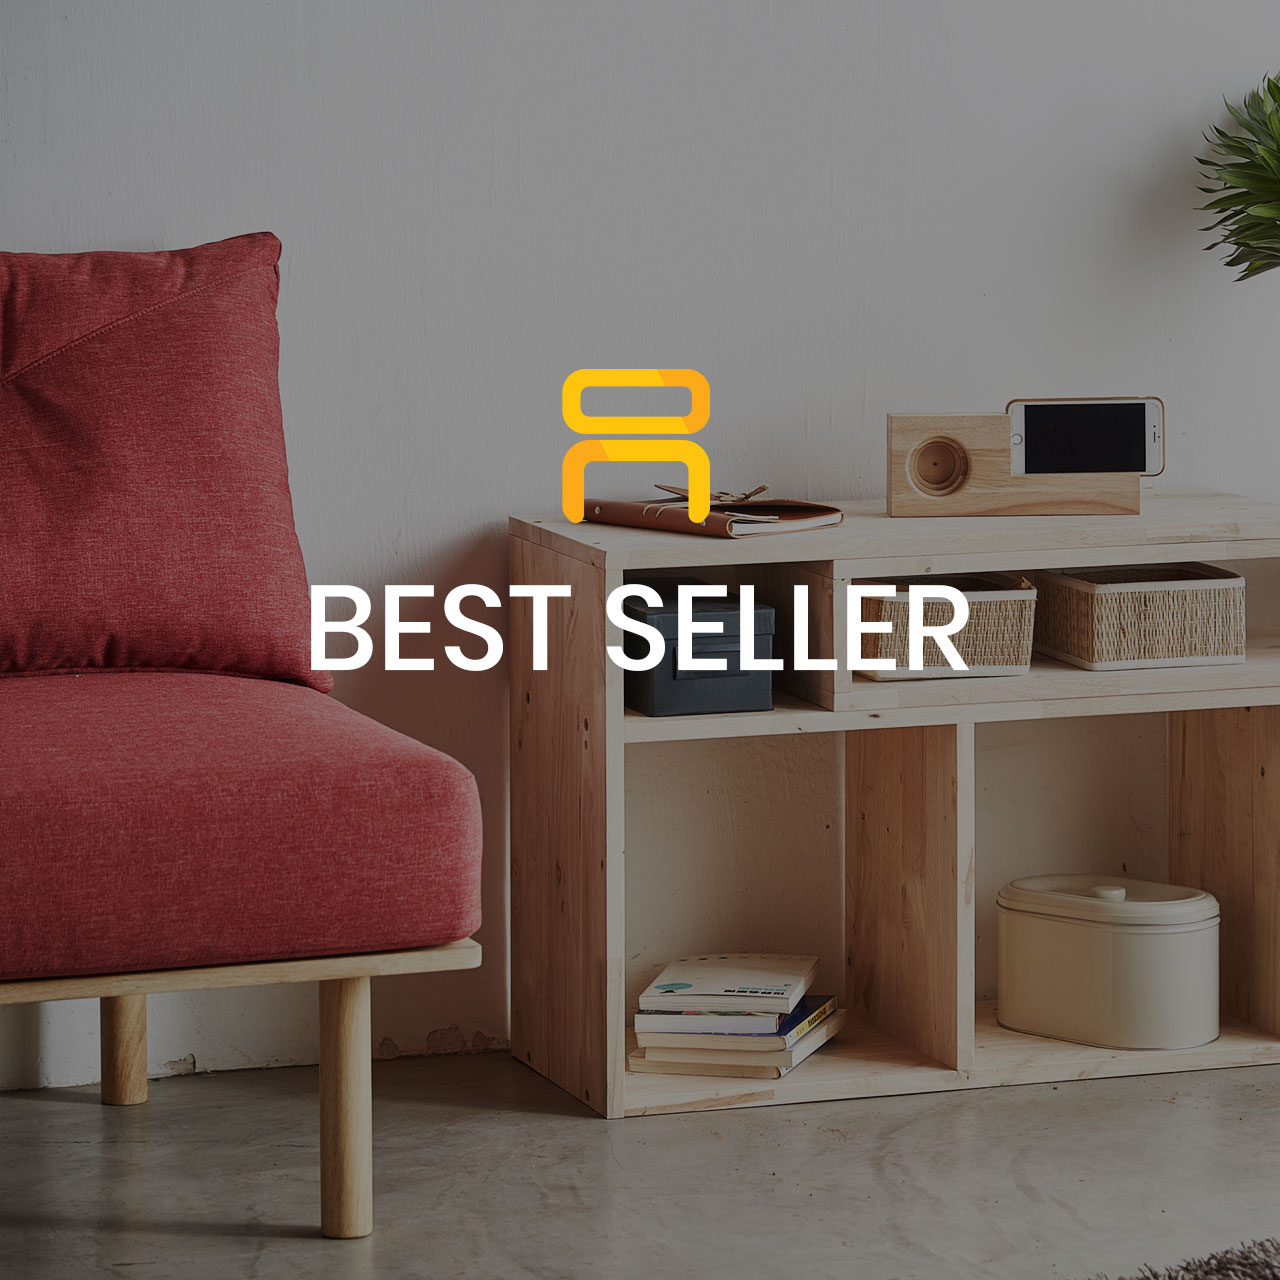 Best Seller Furniture